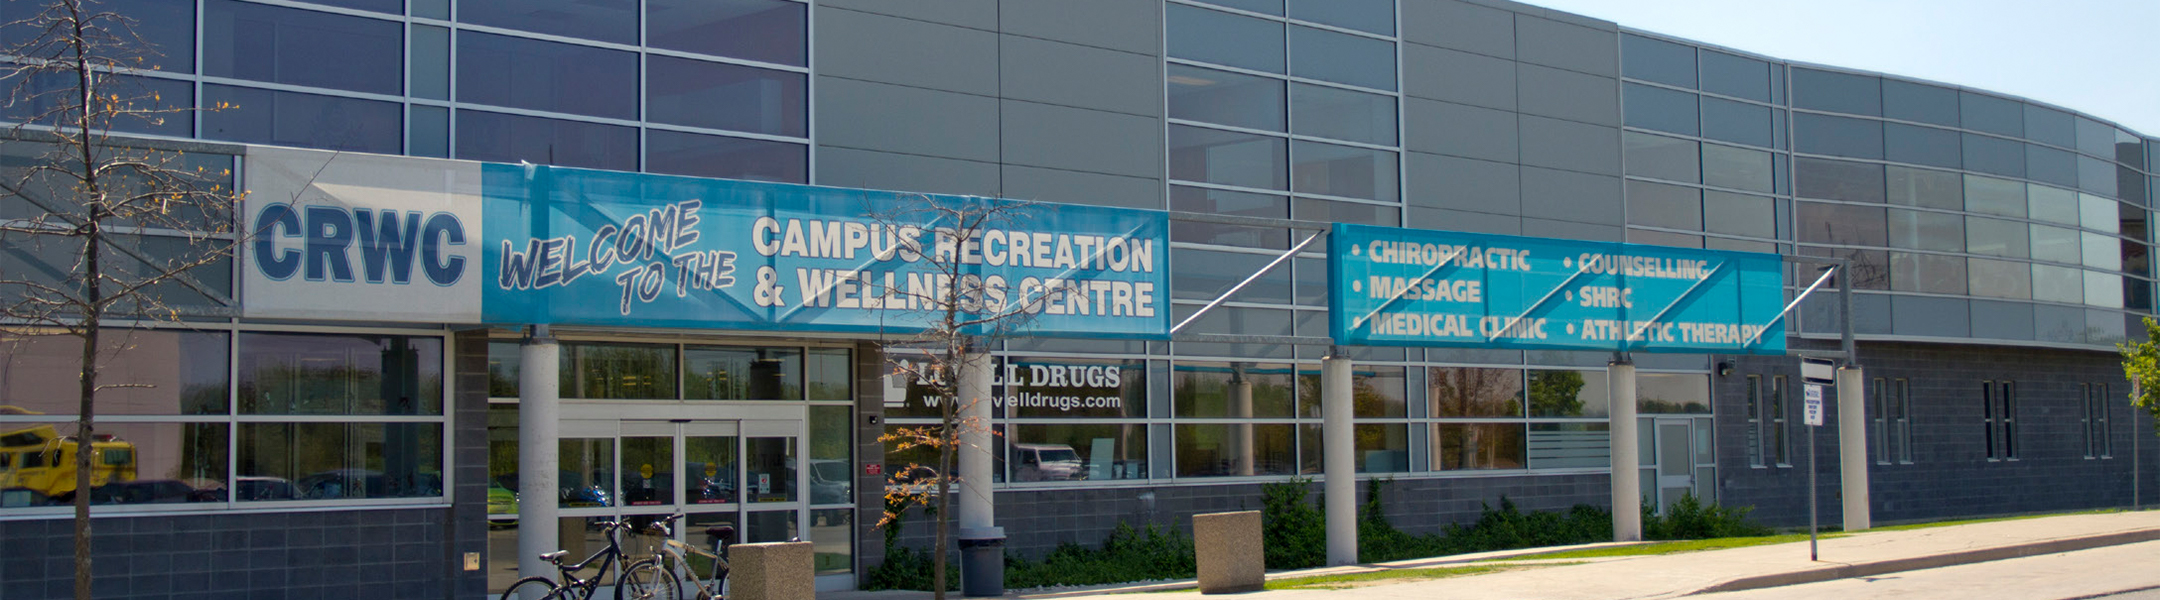 The entrance to the UOIT Campus Recreation and Wellness Centre (CRWC)